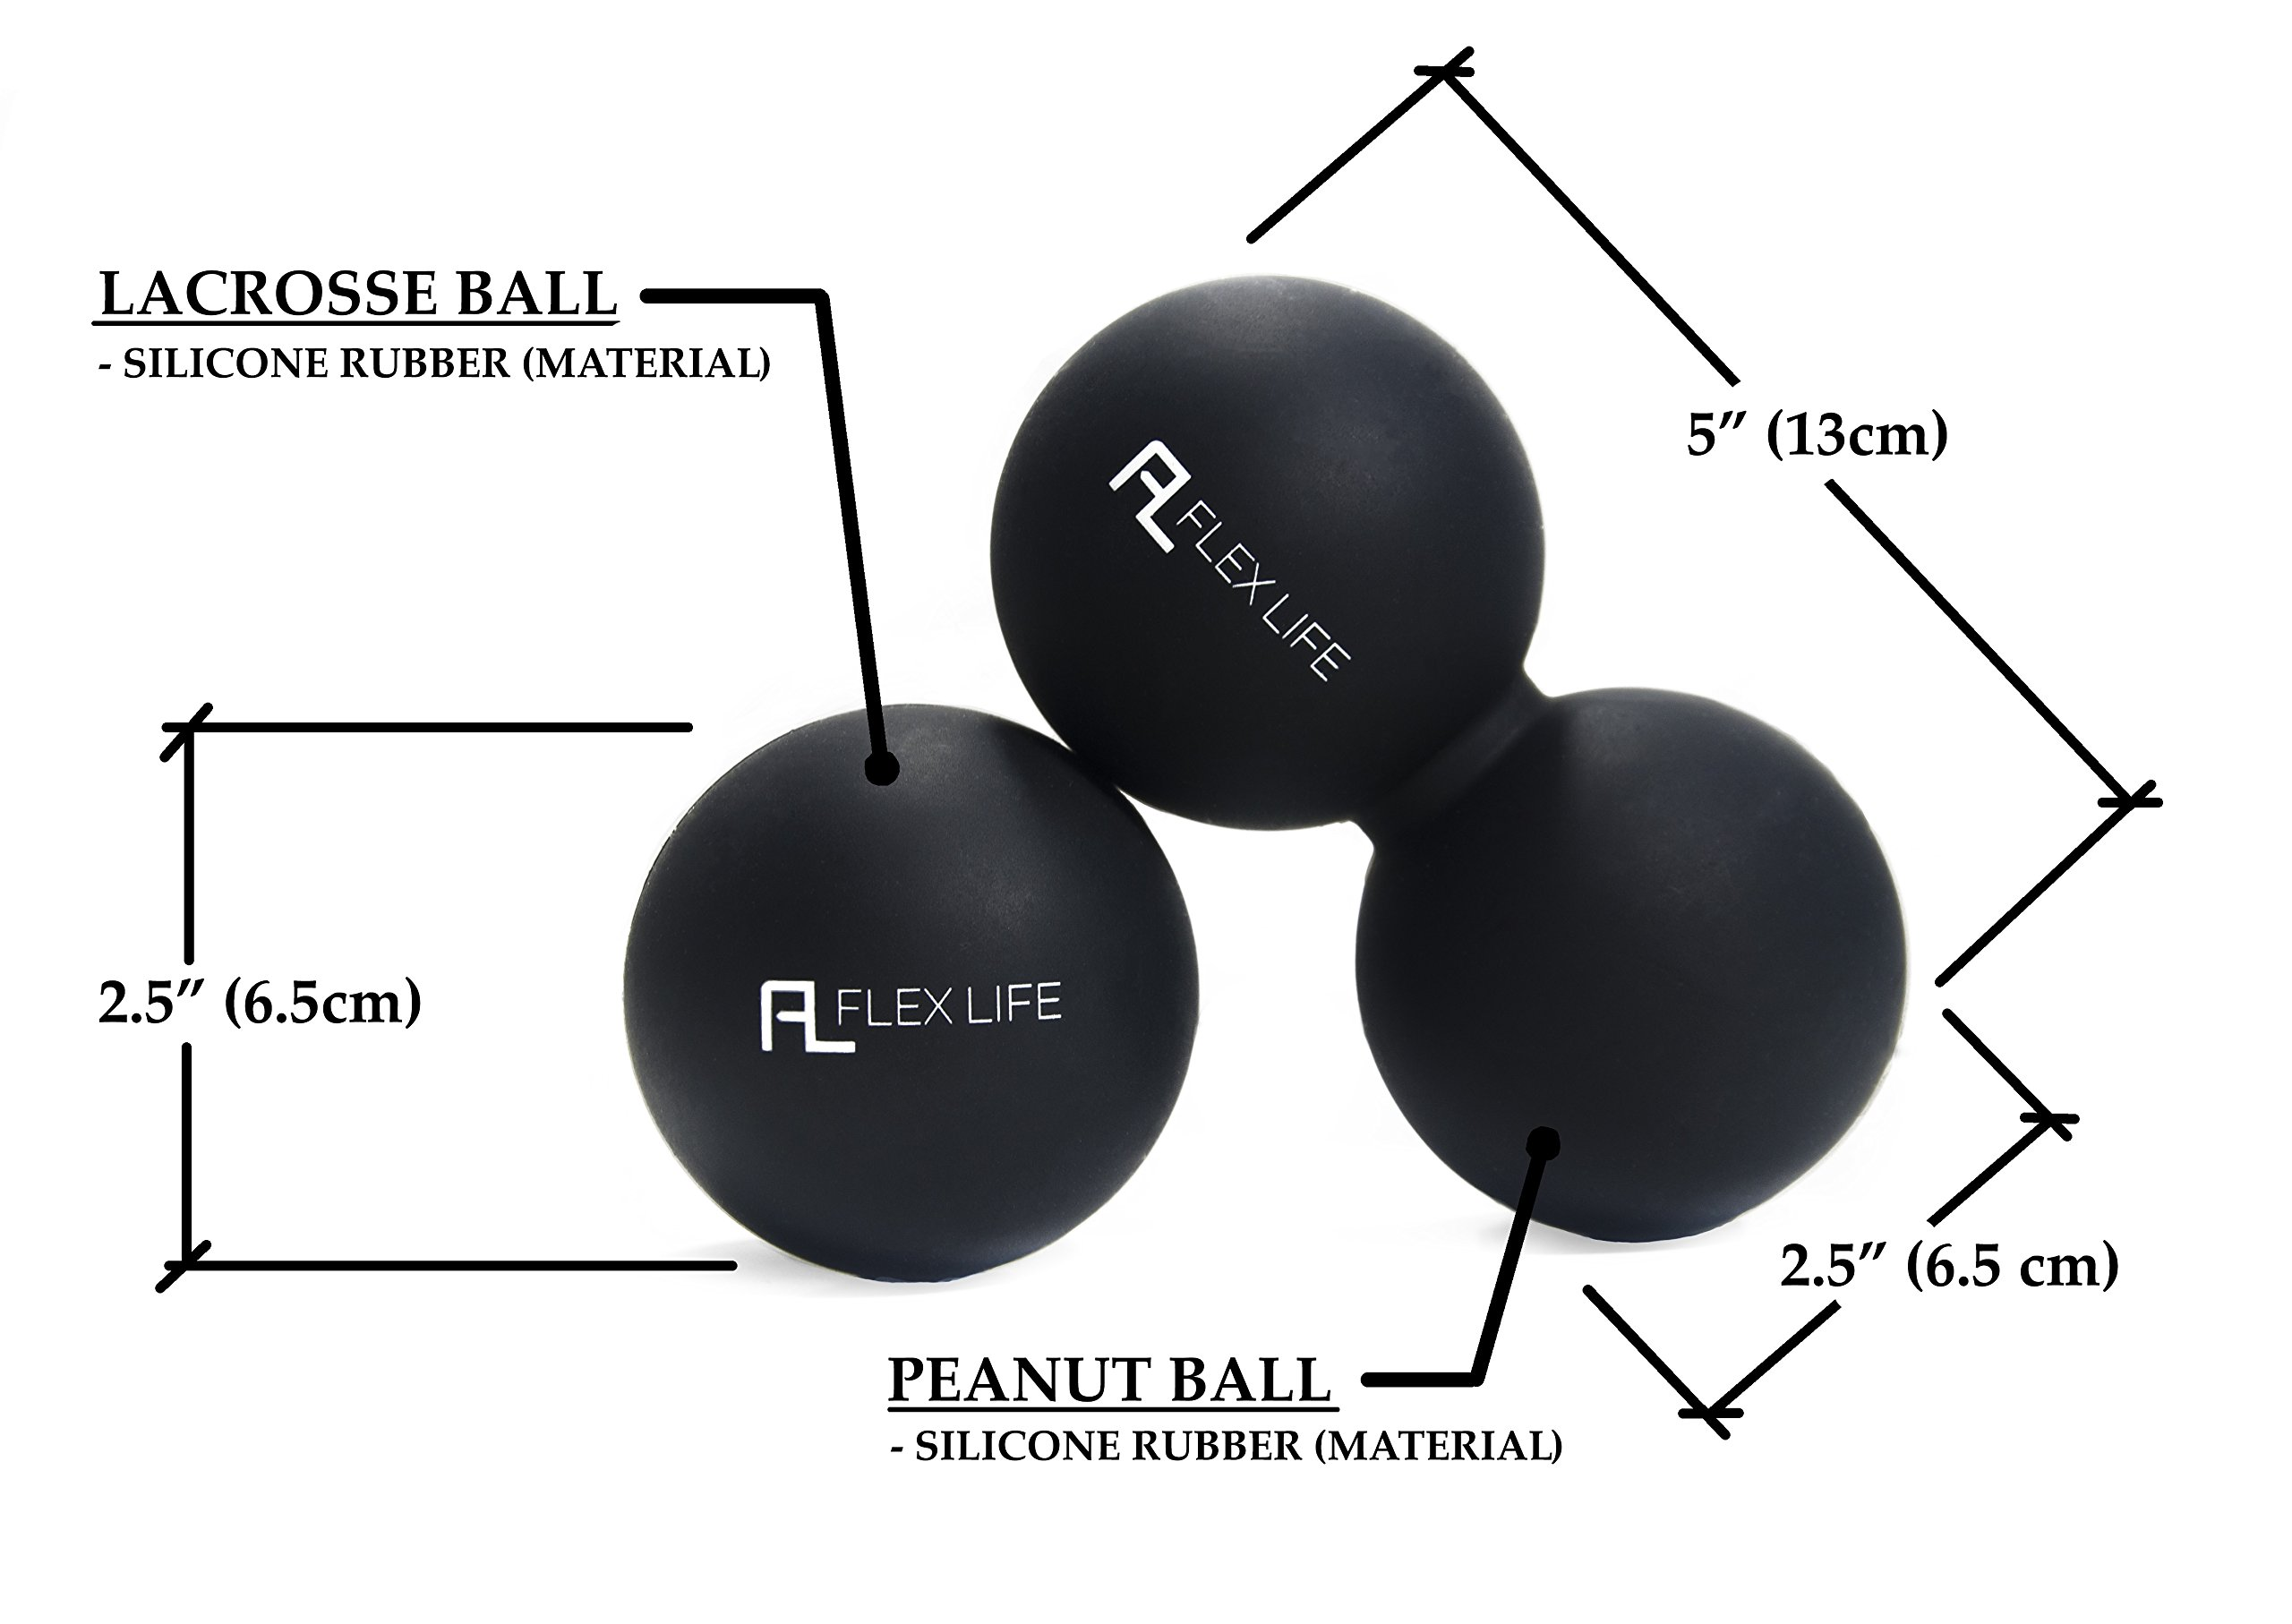 Flex Life Massage Ball Set & Muscle Roller Stick Massager - 2 Spiky Ball, 1 Lacrosse Ball, 1 Peanut Ball, (1) 18'' Roller Stick. Great Rollers For Plantar Fasciitis, Mobility, Recovery, Soreness by Flex Life (Image #4)